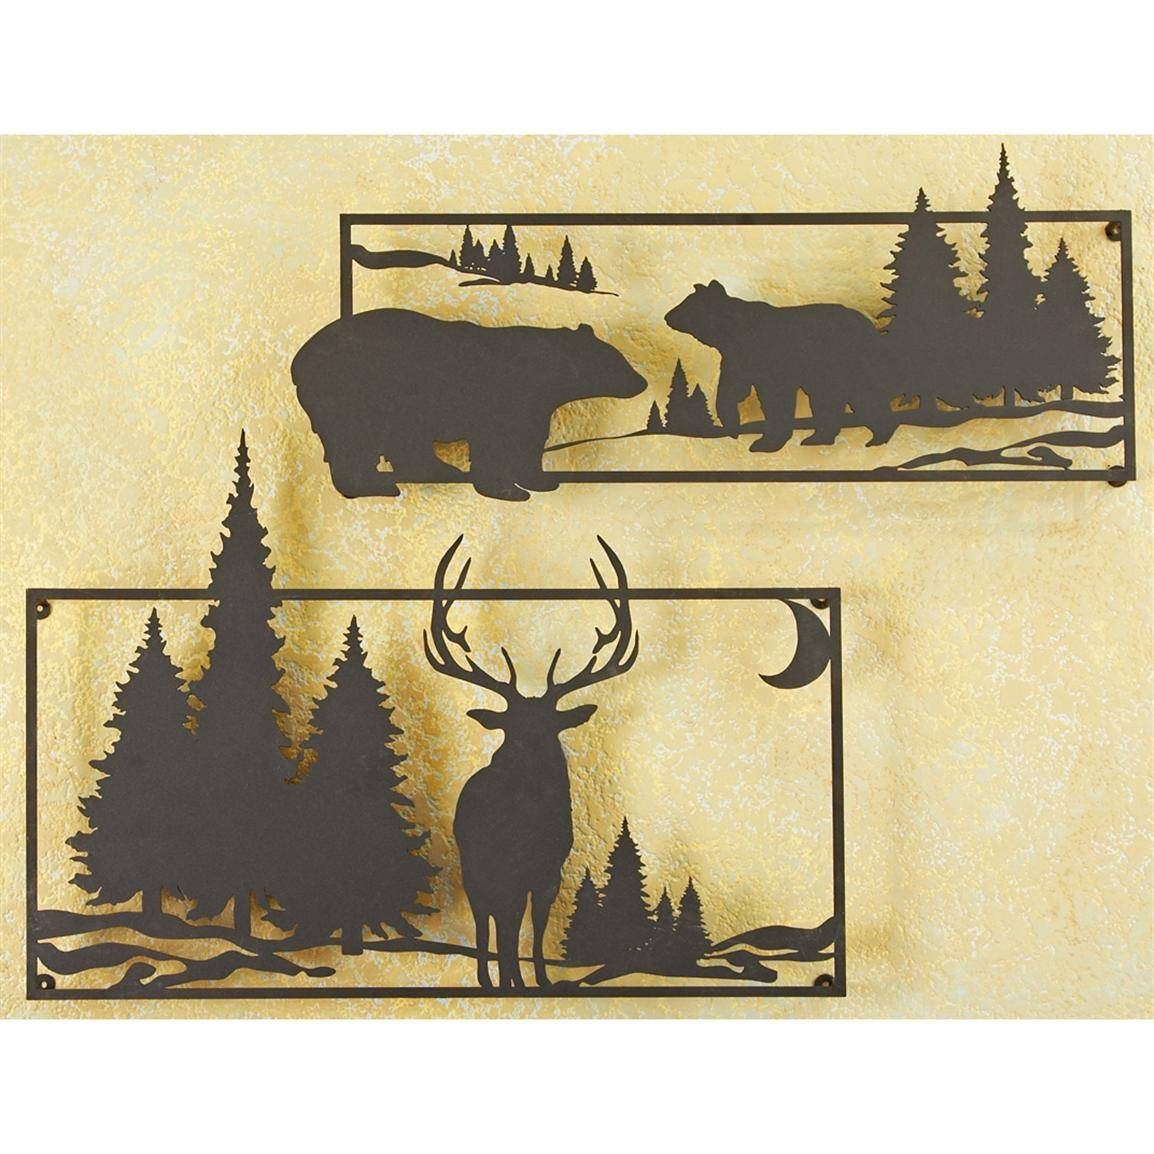 Fantastic Wildlife Metal Wall Art Contemporary - The Wall Art ...